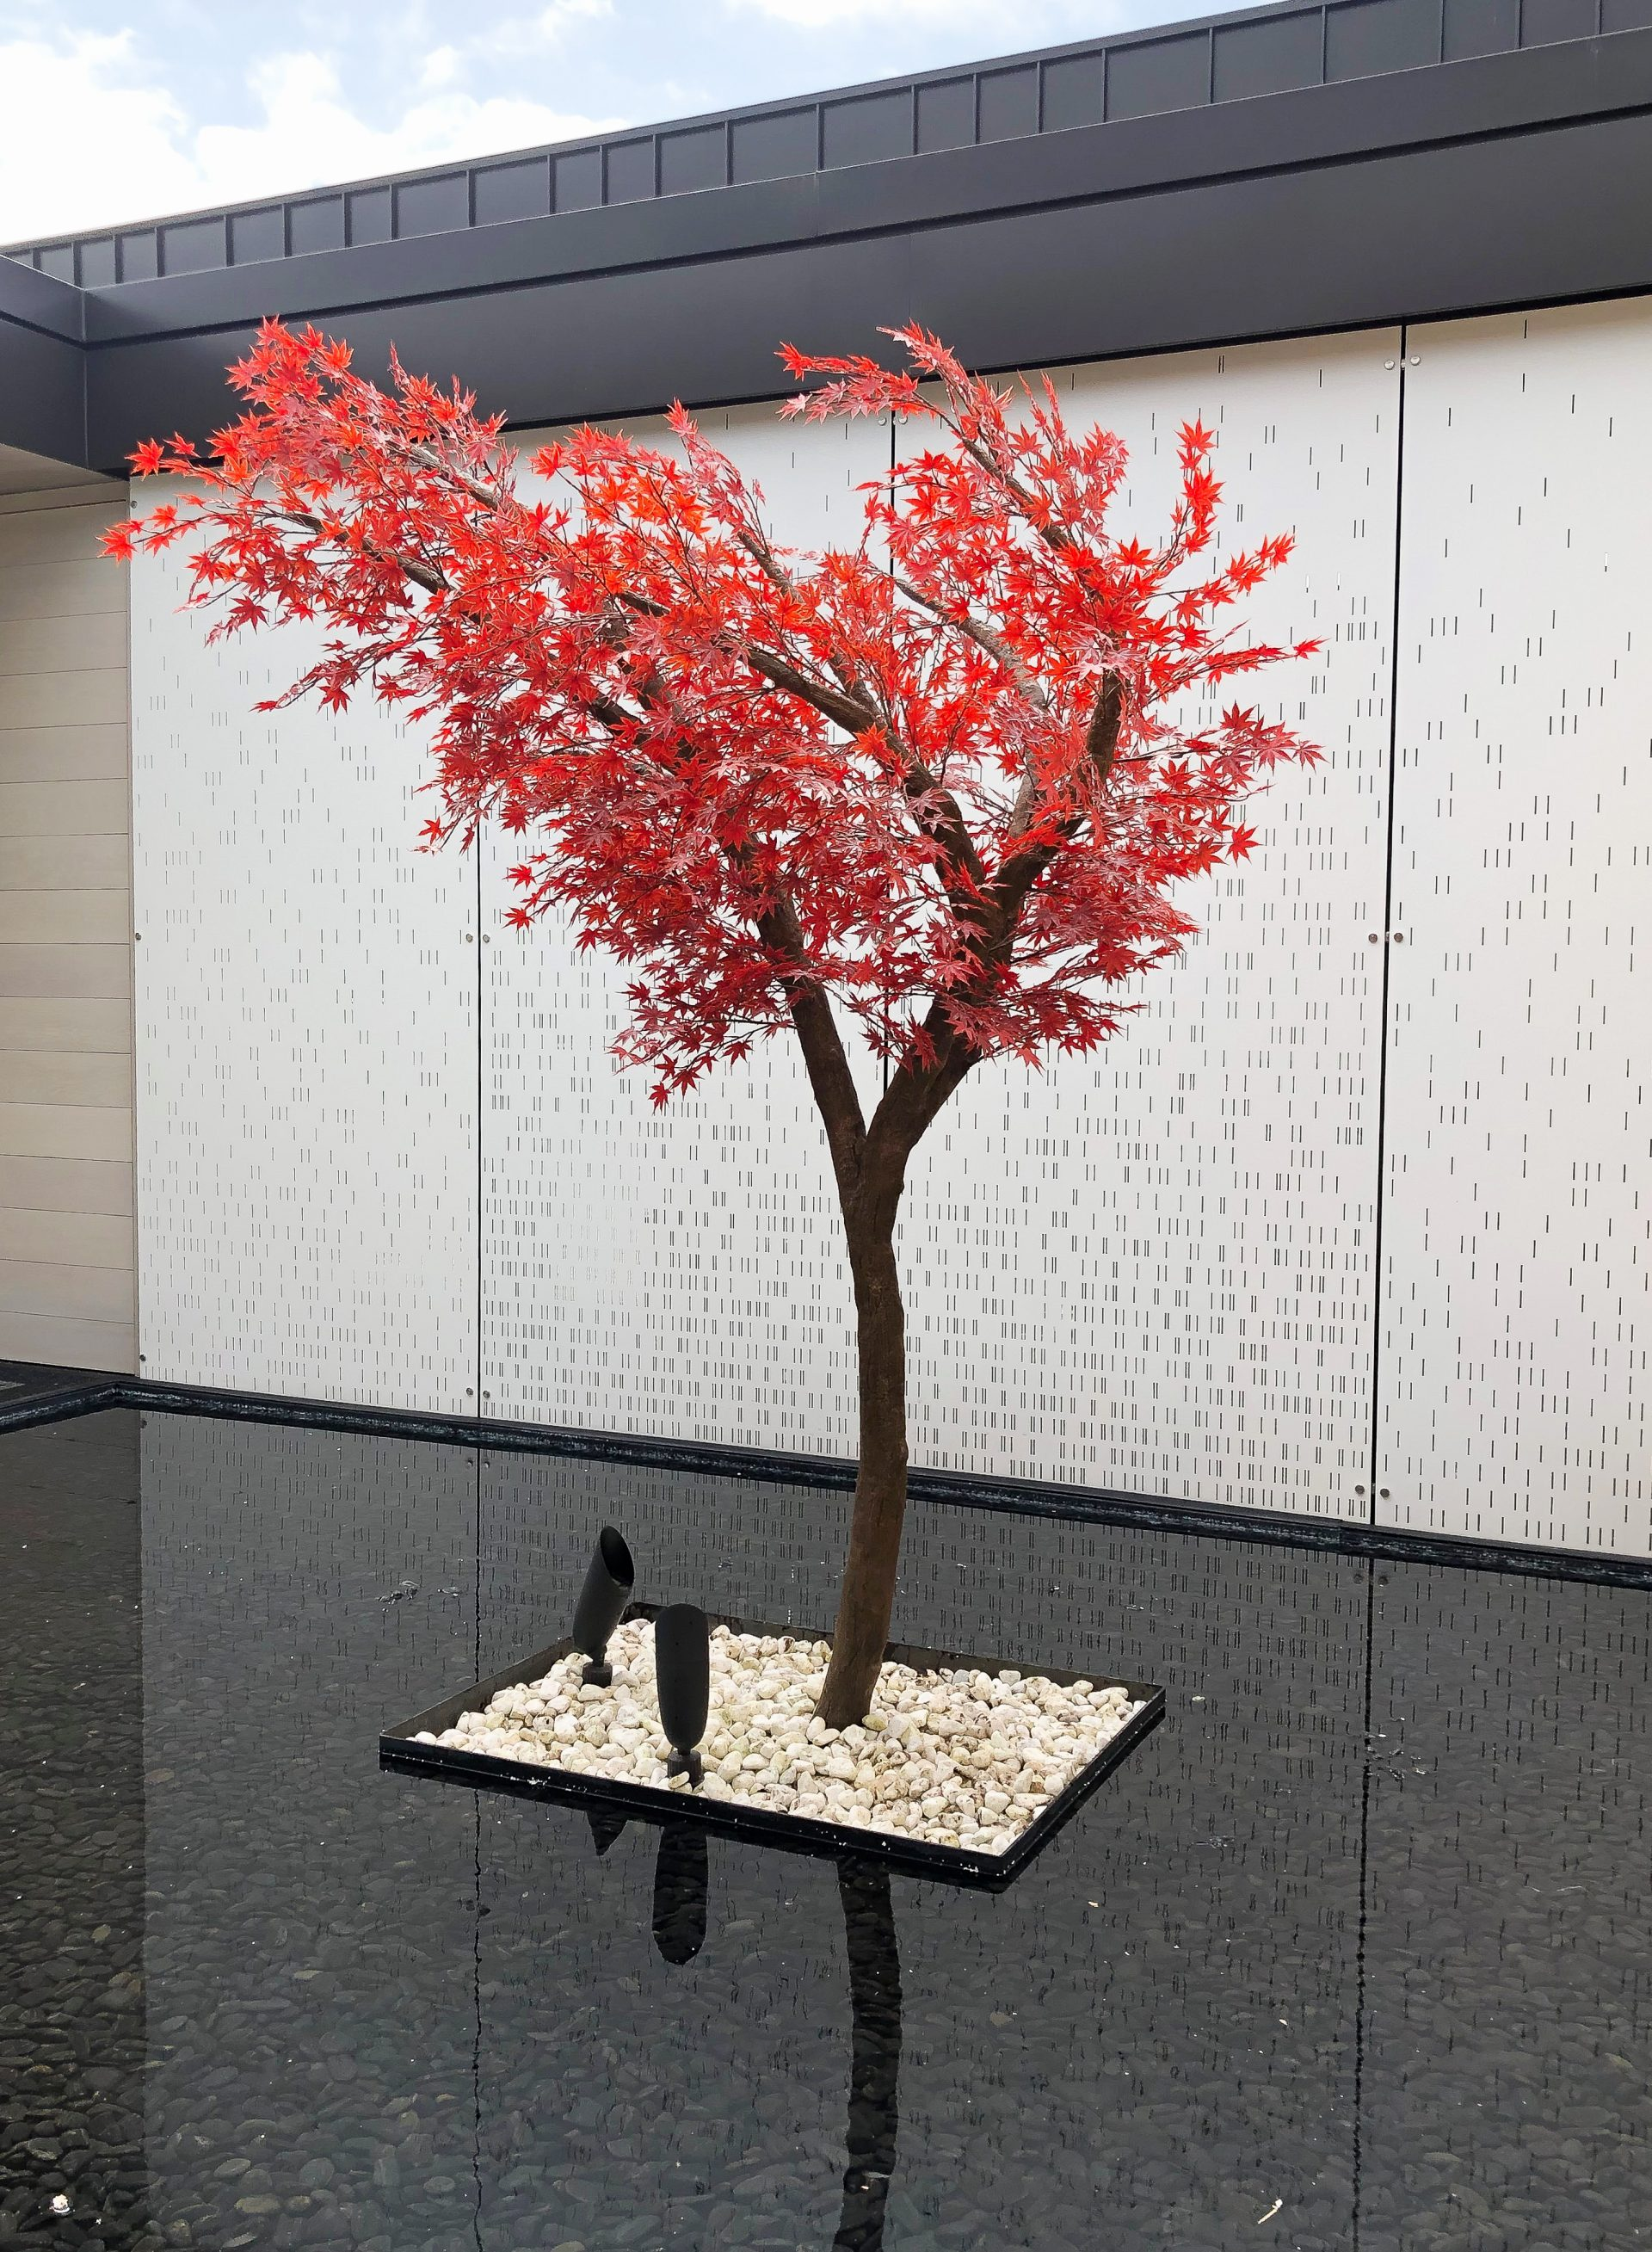 Asymmetrical outdoor red japanese maple tree as centre of water feature in residential home.